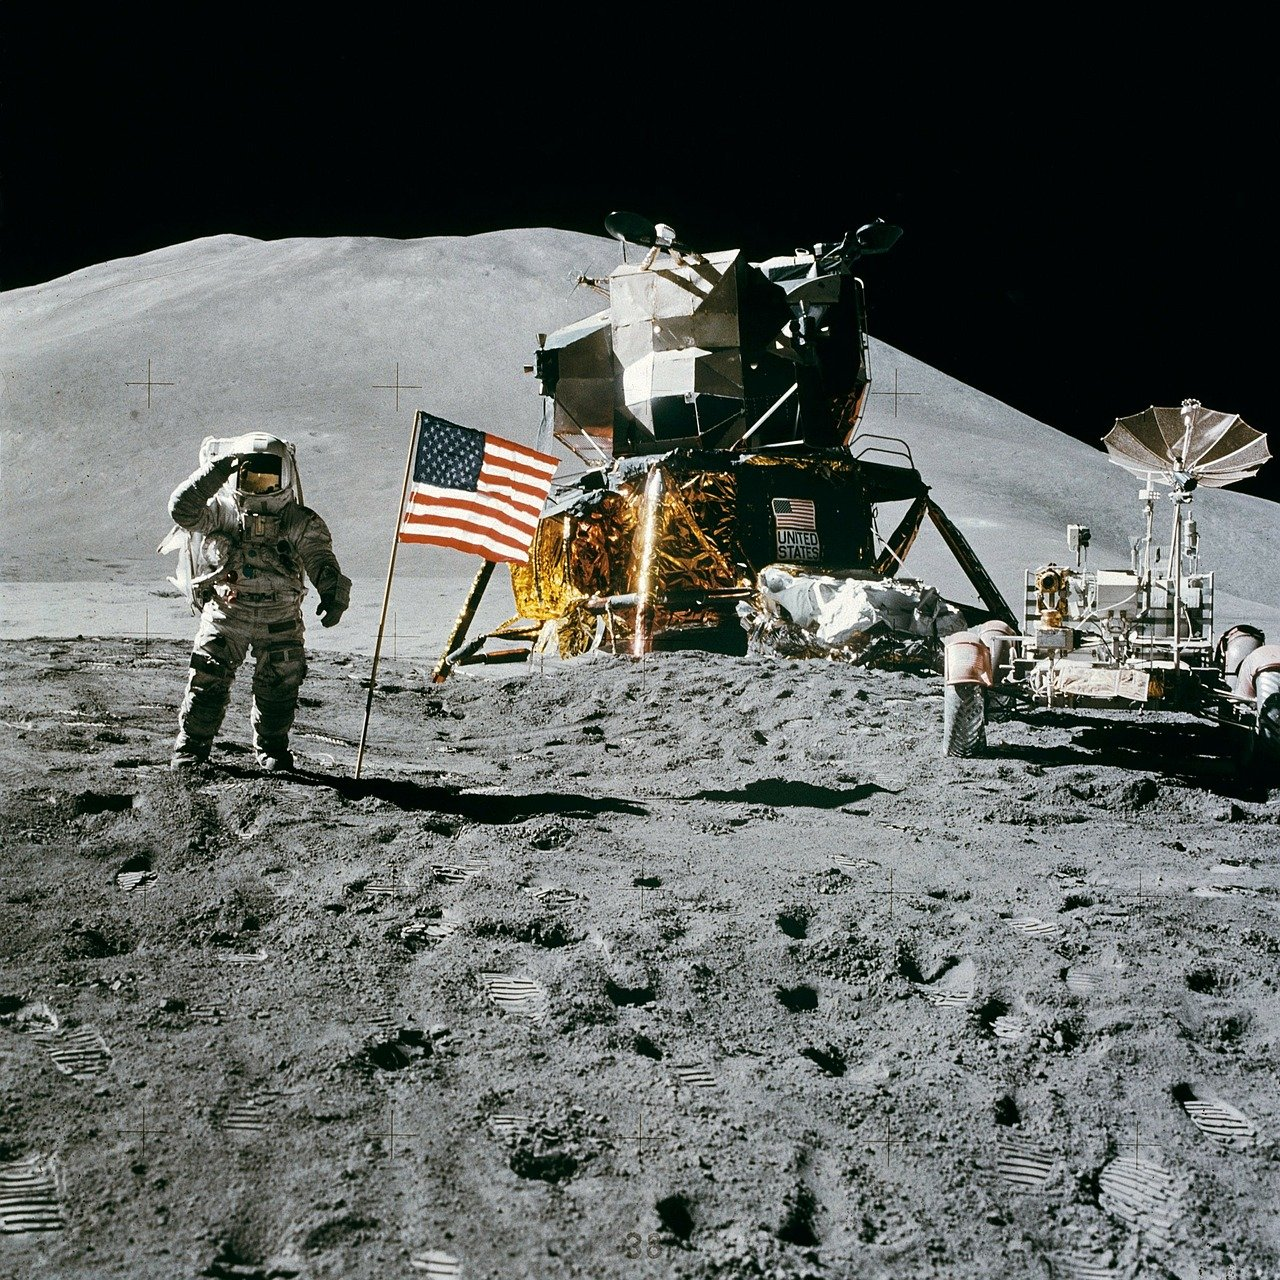 The first men on the moon - some of the worlds greatest pioneers.